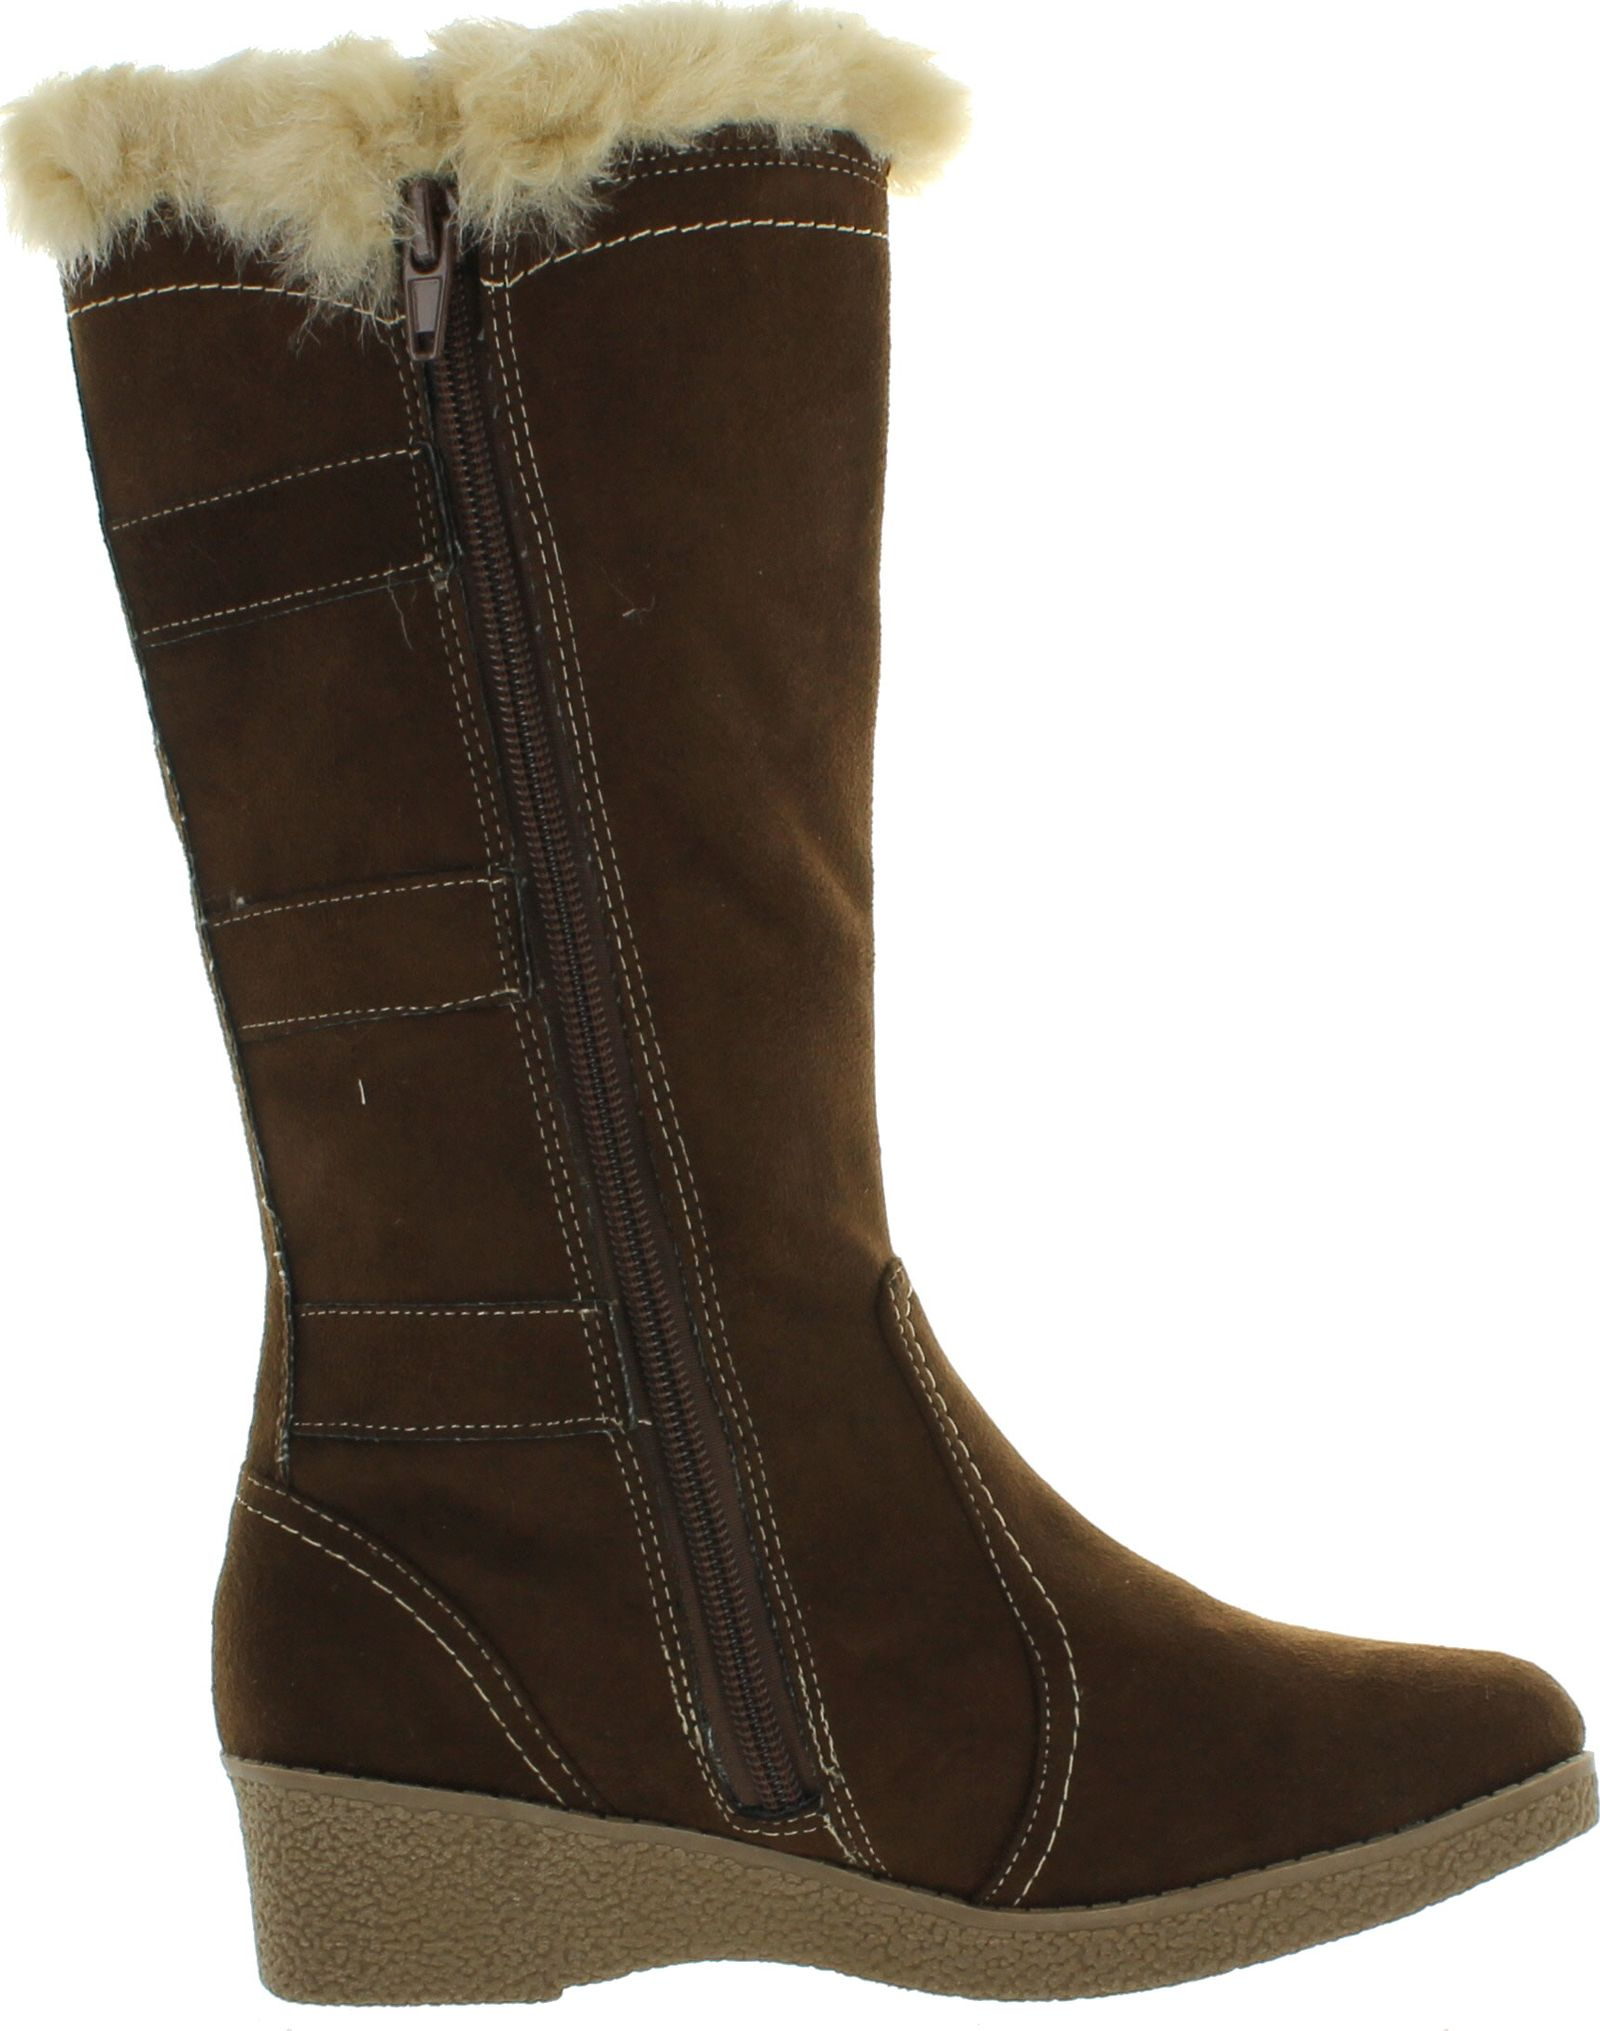 nine west winter boots ebay